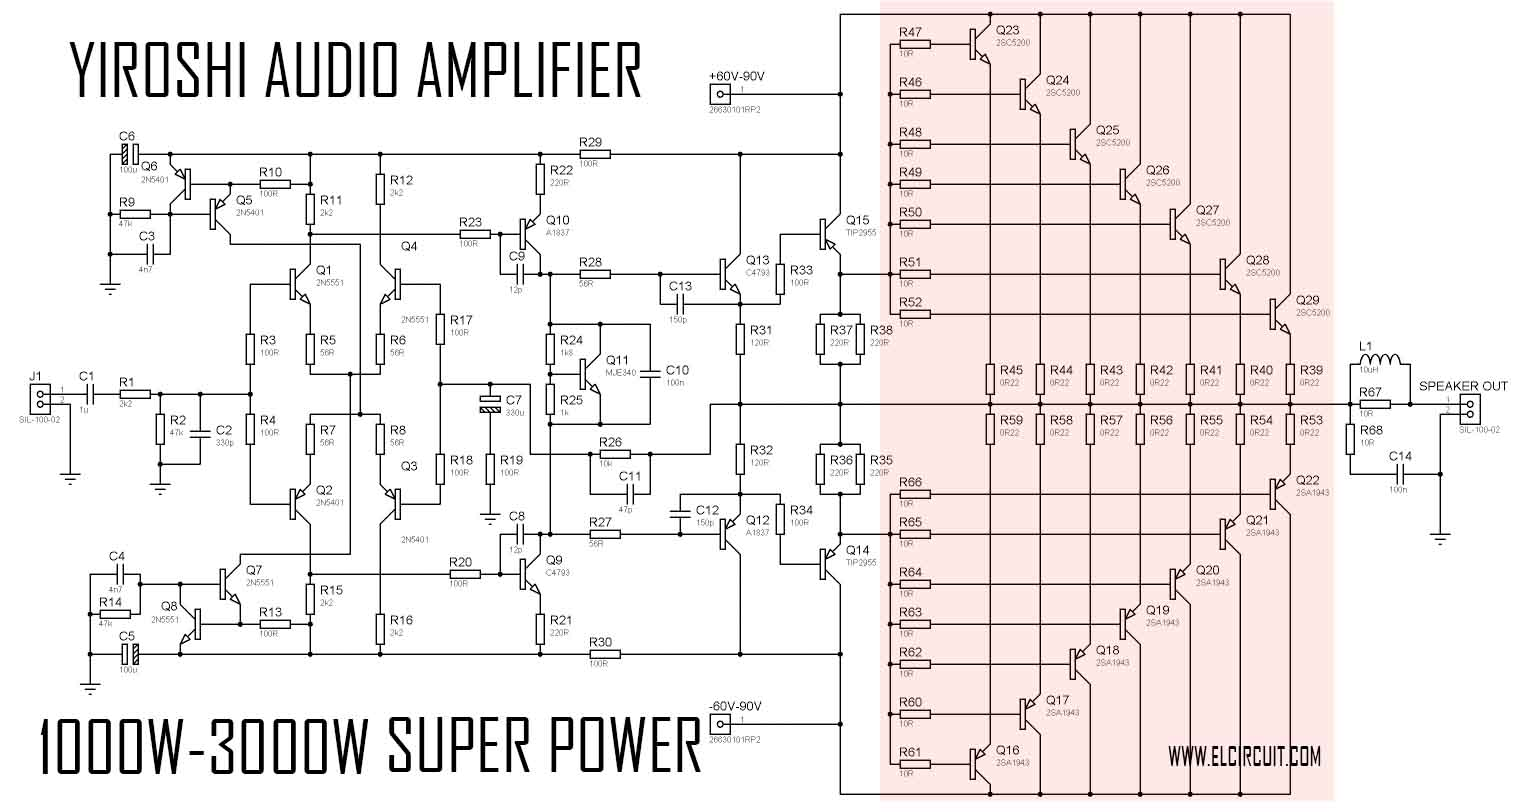 5000 watt amplifier circuit diagram oracle database 11g architecture with explanation watts diagrams wiring library yiroshi 1000w 1kw output power